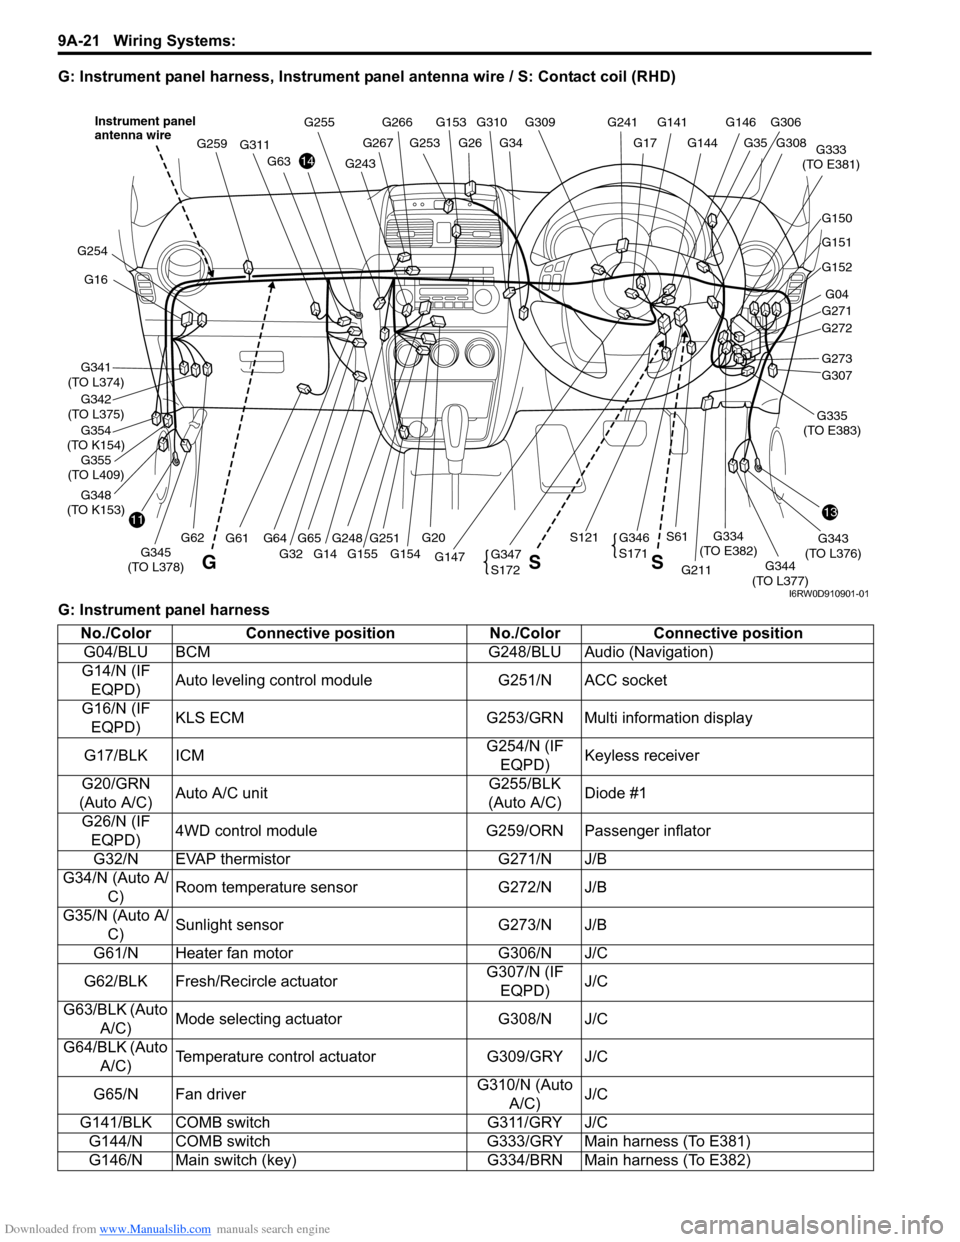 Suzuki na12s manual array beautiful suzuki sx4 wiring diagram pictures best images for rh oursweetbakeshop info fandeluxe Choice Image